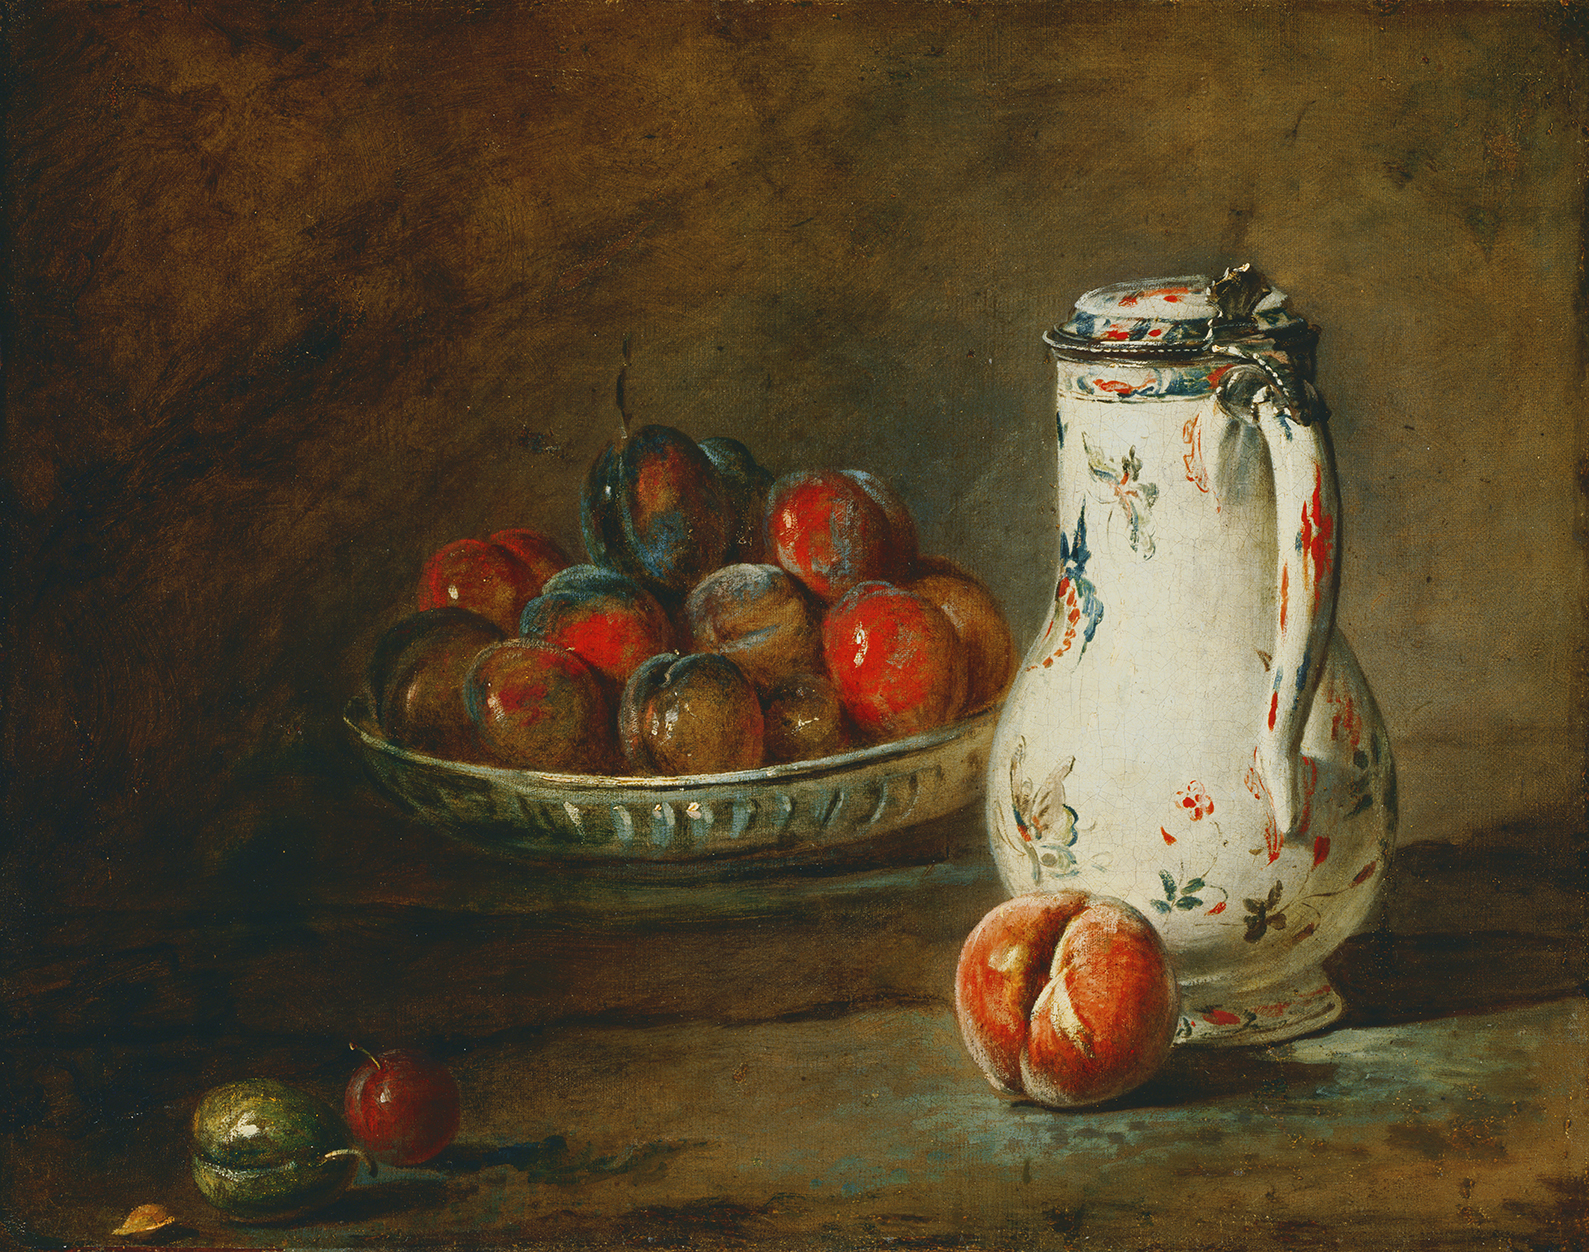 ModVis 001_Chardin_A Bowl of Plums crop SM.jpg